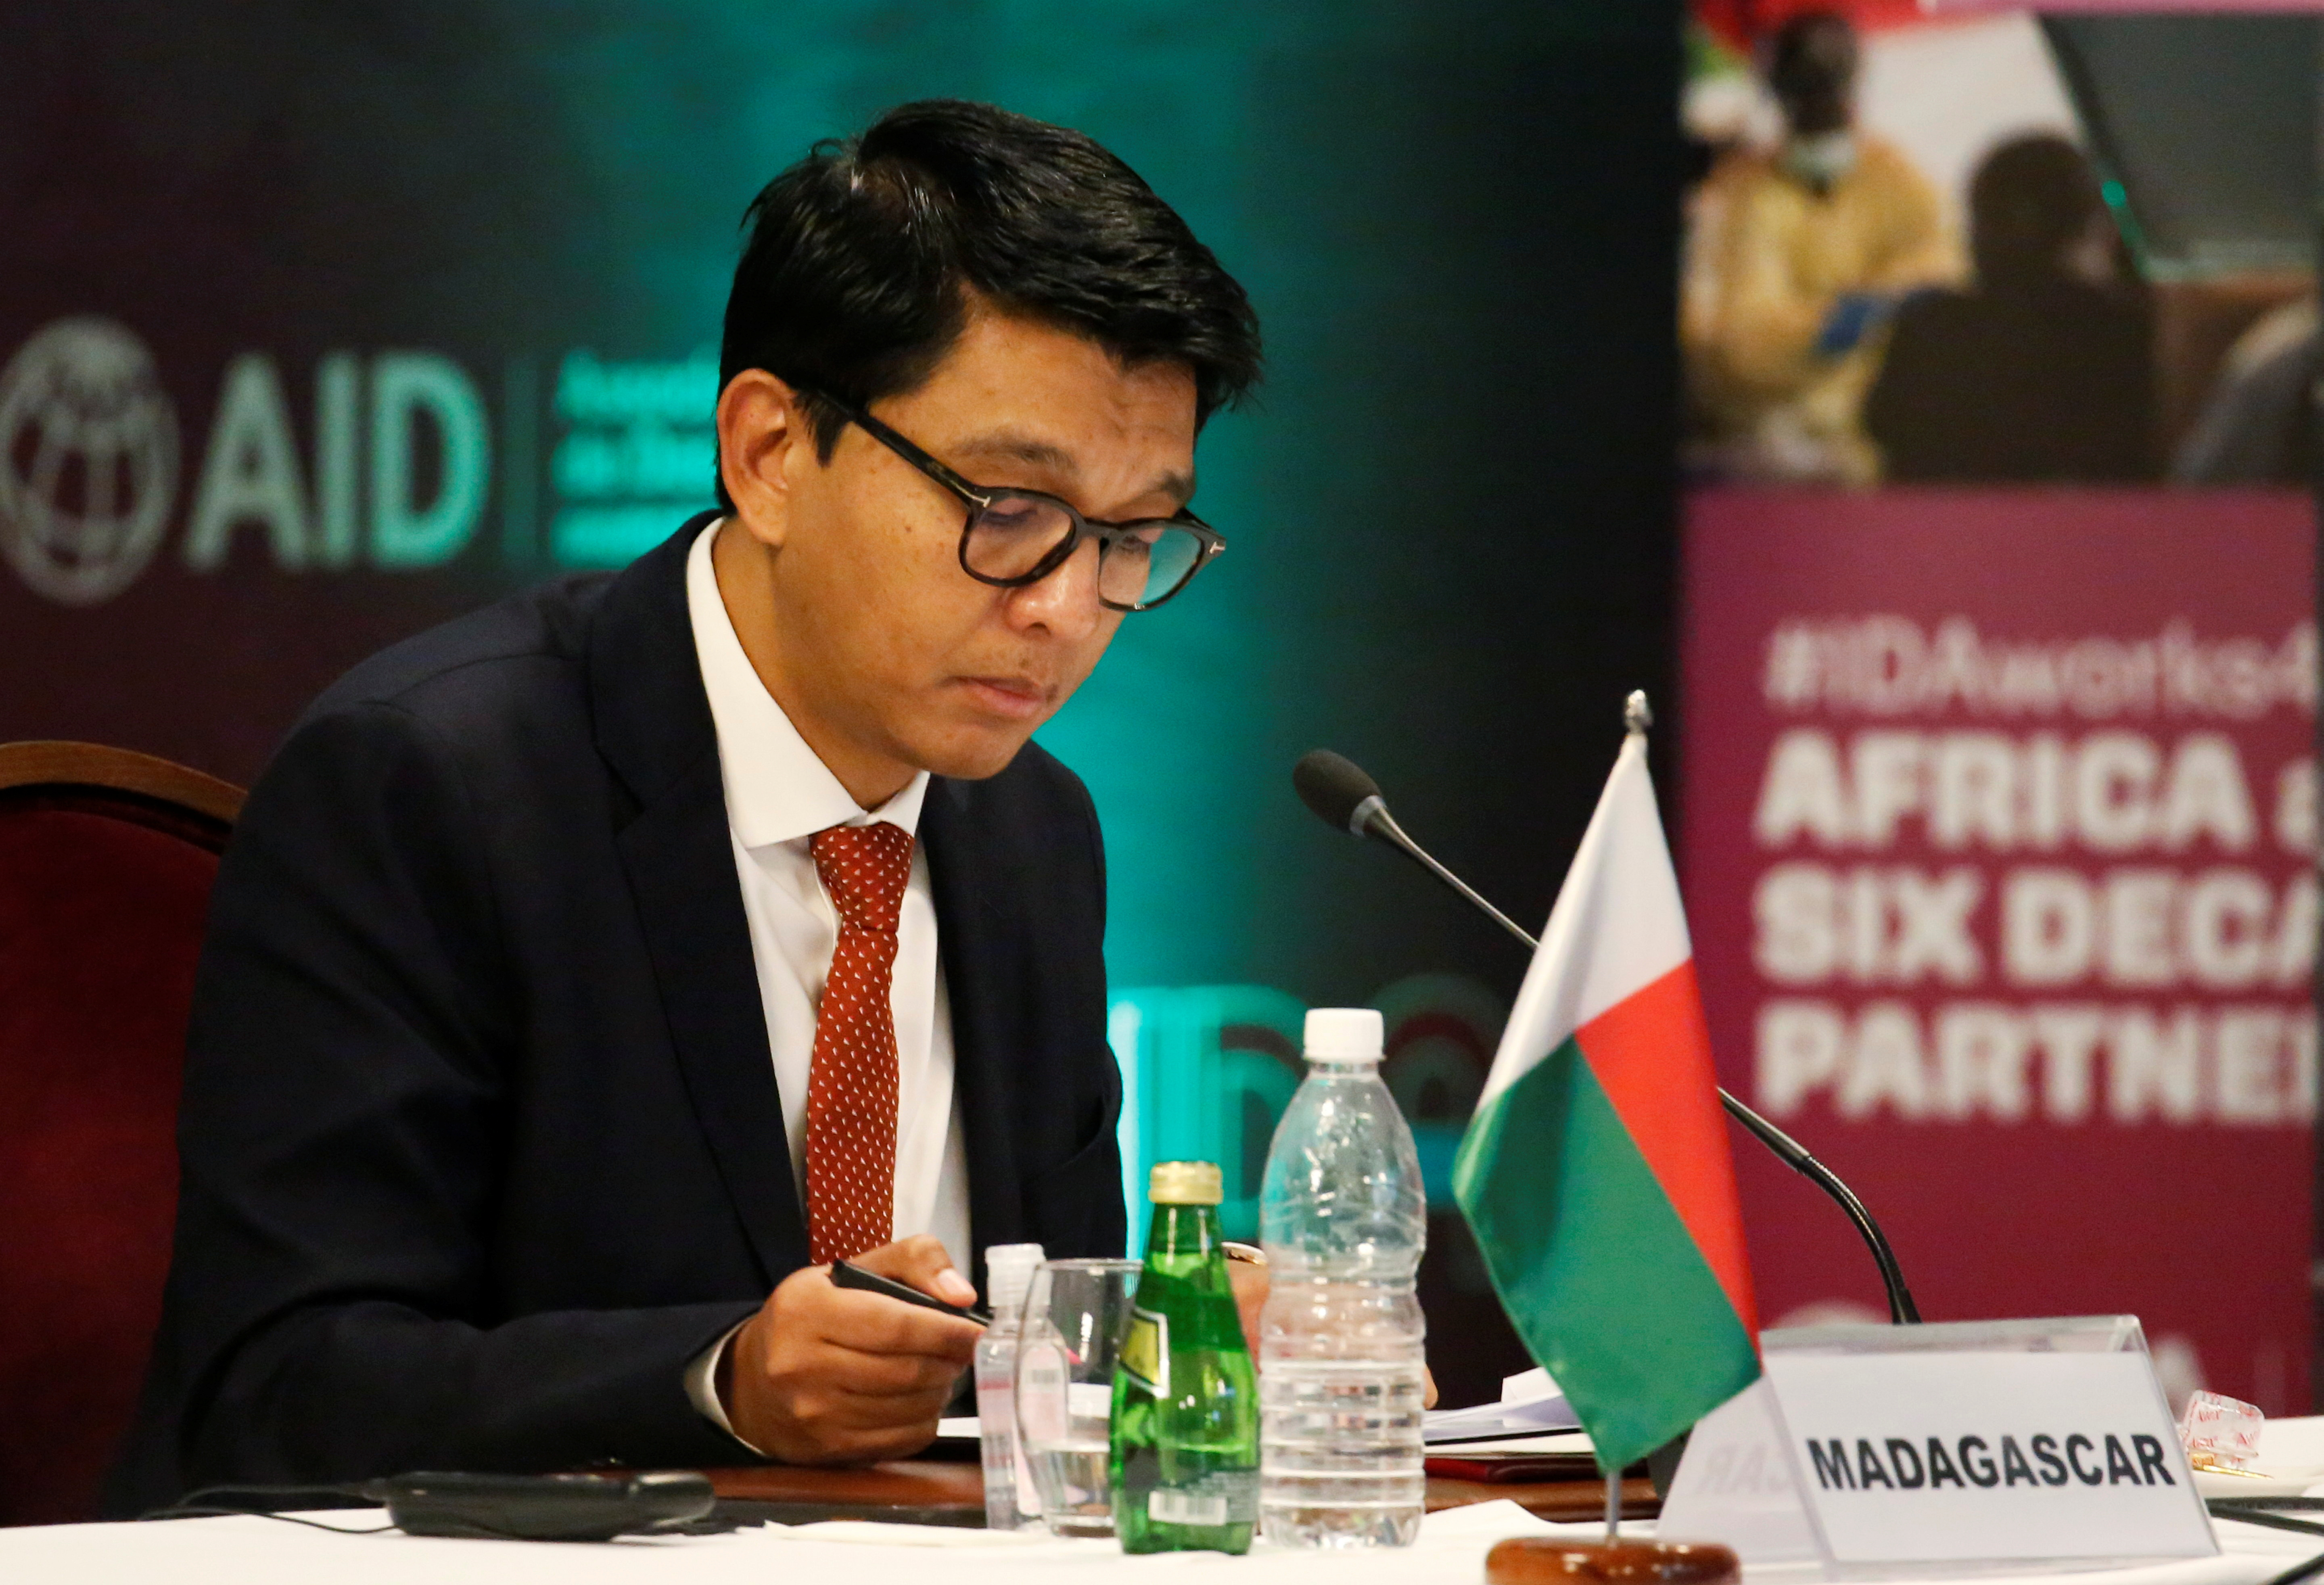 Madagascar's President Andry Rajoelina attends a meeting to discuss the 20th replenishment of the World Bank's International Development Association, in Abidjan, Ivory Coast July 15, 2021. REUTERS/Luc Gnago